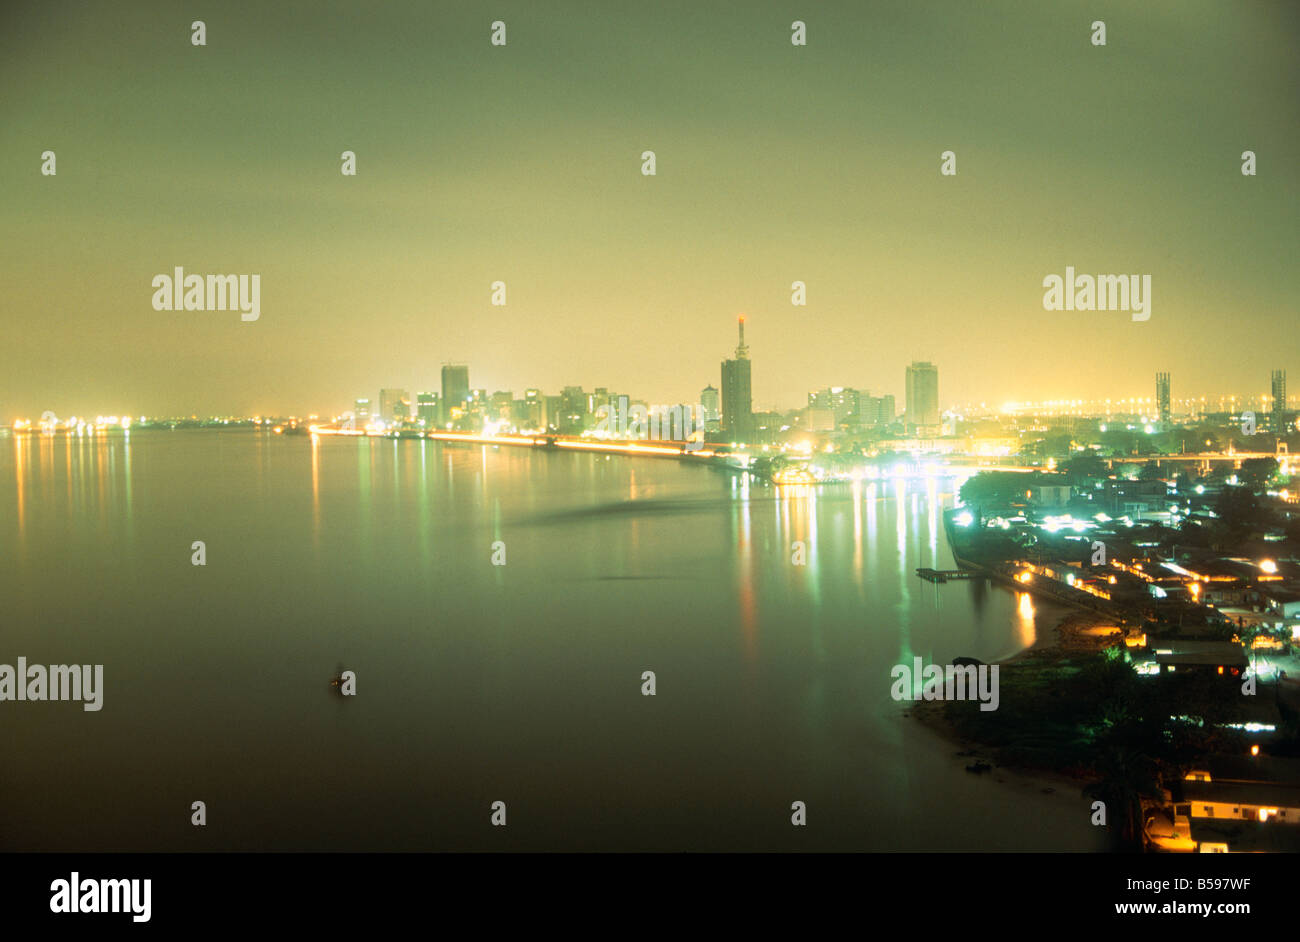 Ships in harbour at night in NNPC Nigerian National Petroleum Corporation oil refinery in Lagos Nigeria Africa - Stock Image